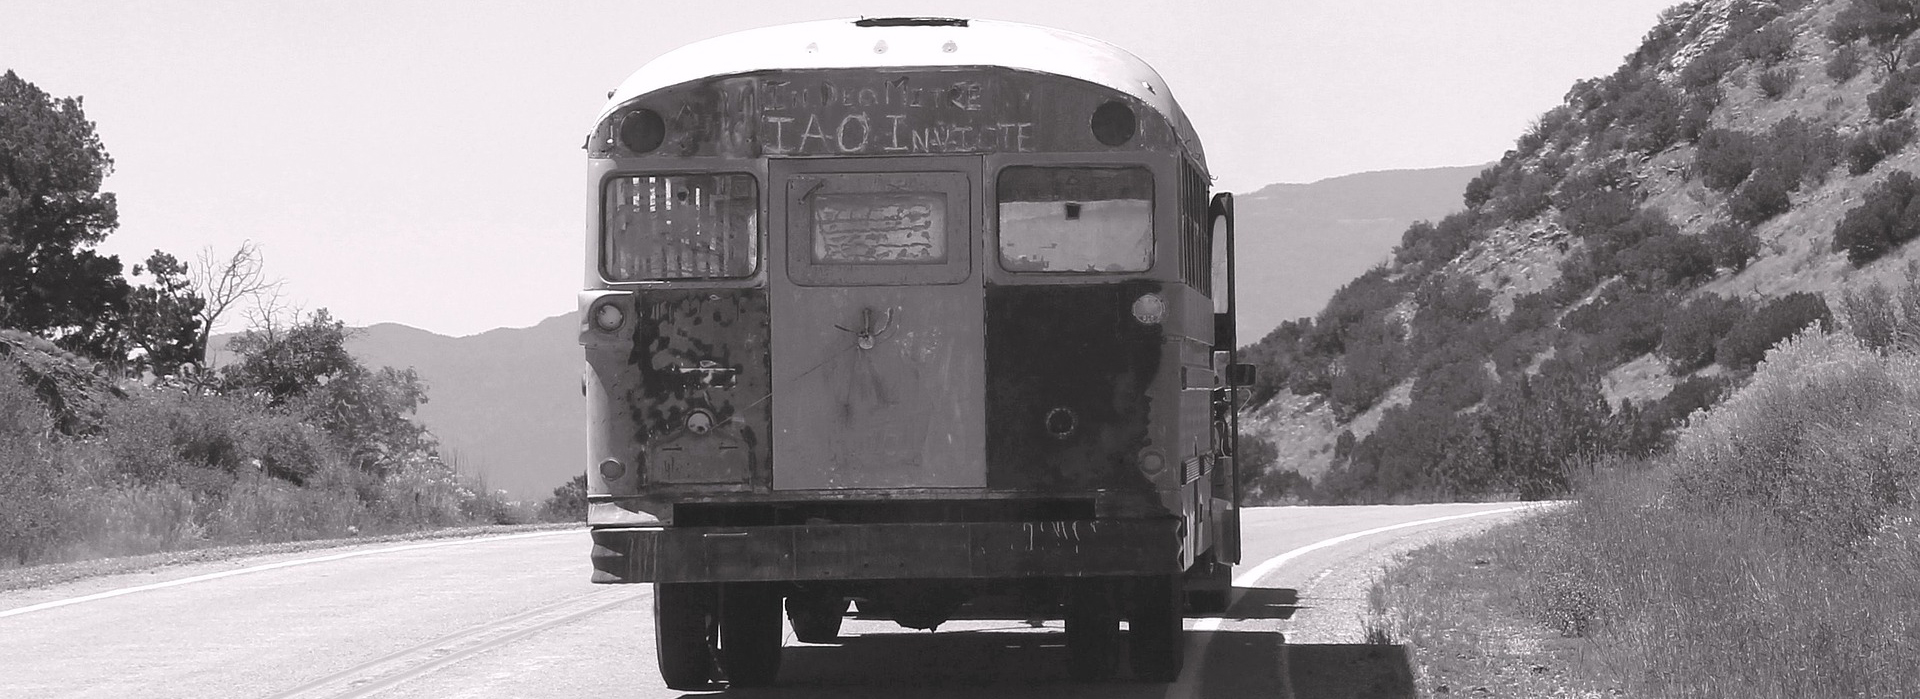 Old Bus in Plano Texas - CarDonations4Cancer.org